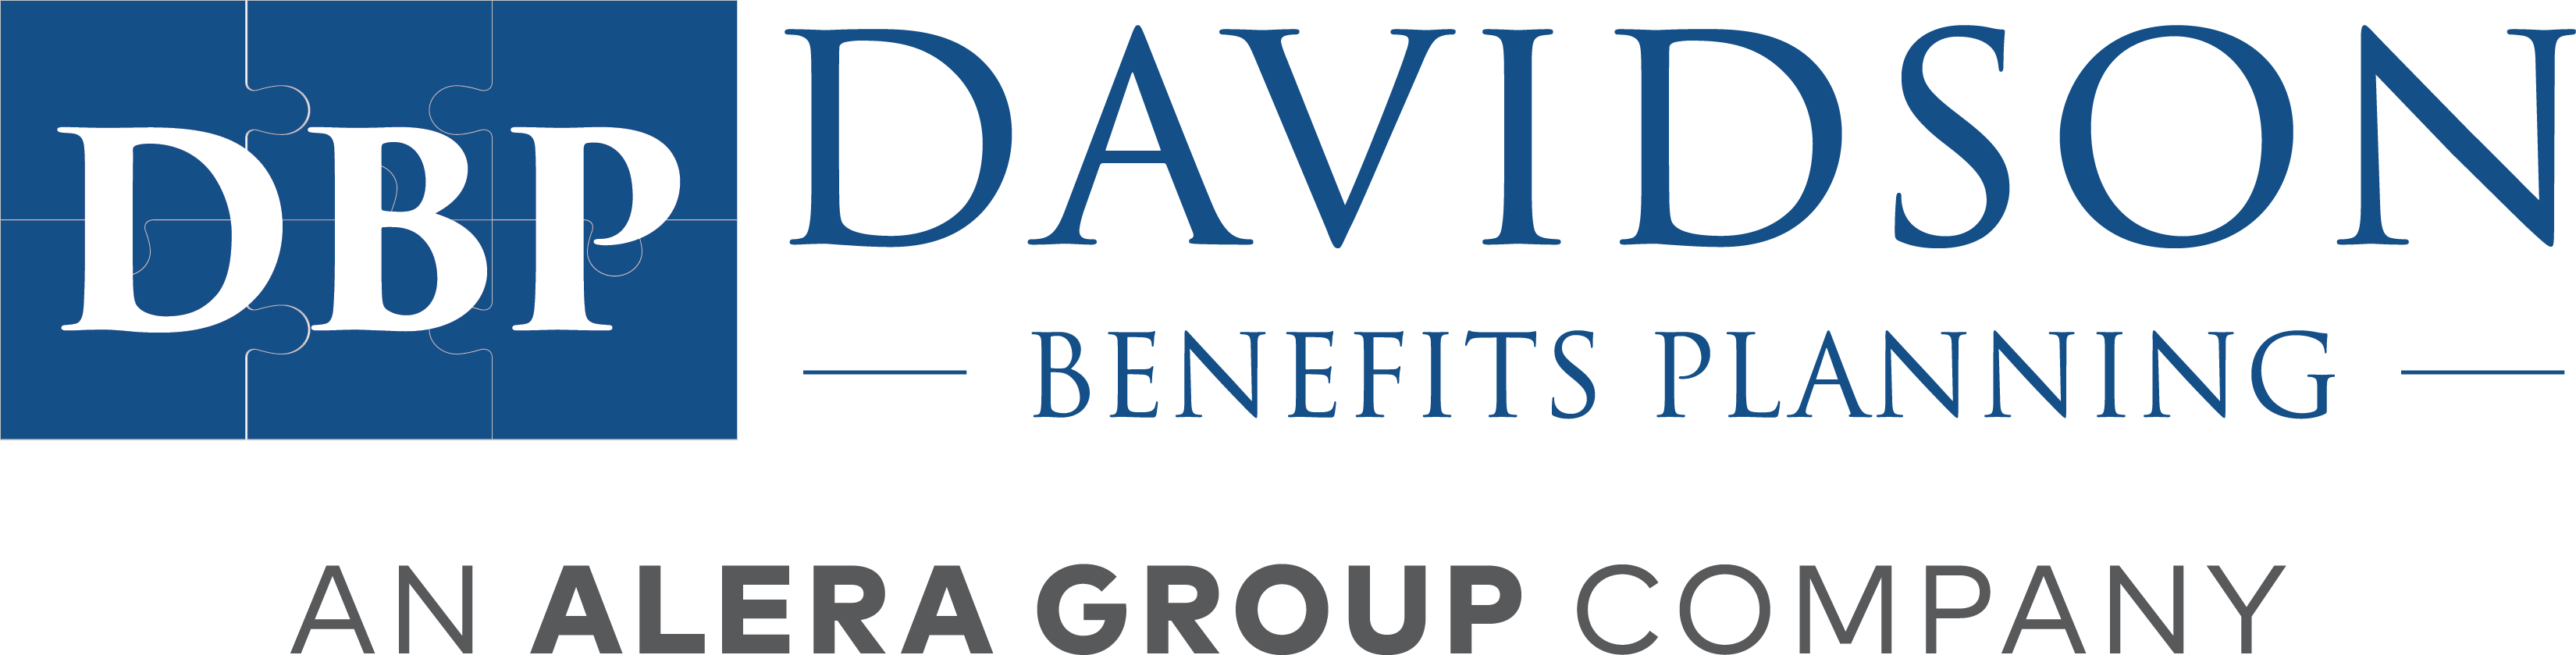 Davidson Benefits Planning - The employee benefits broker and group health insurance advisor in Portland